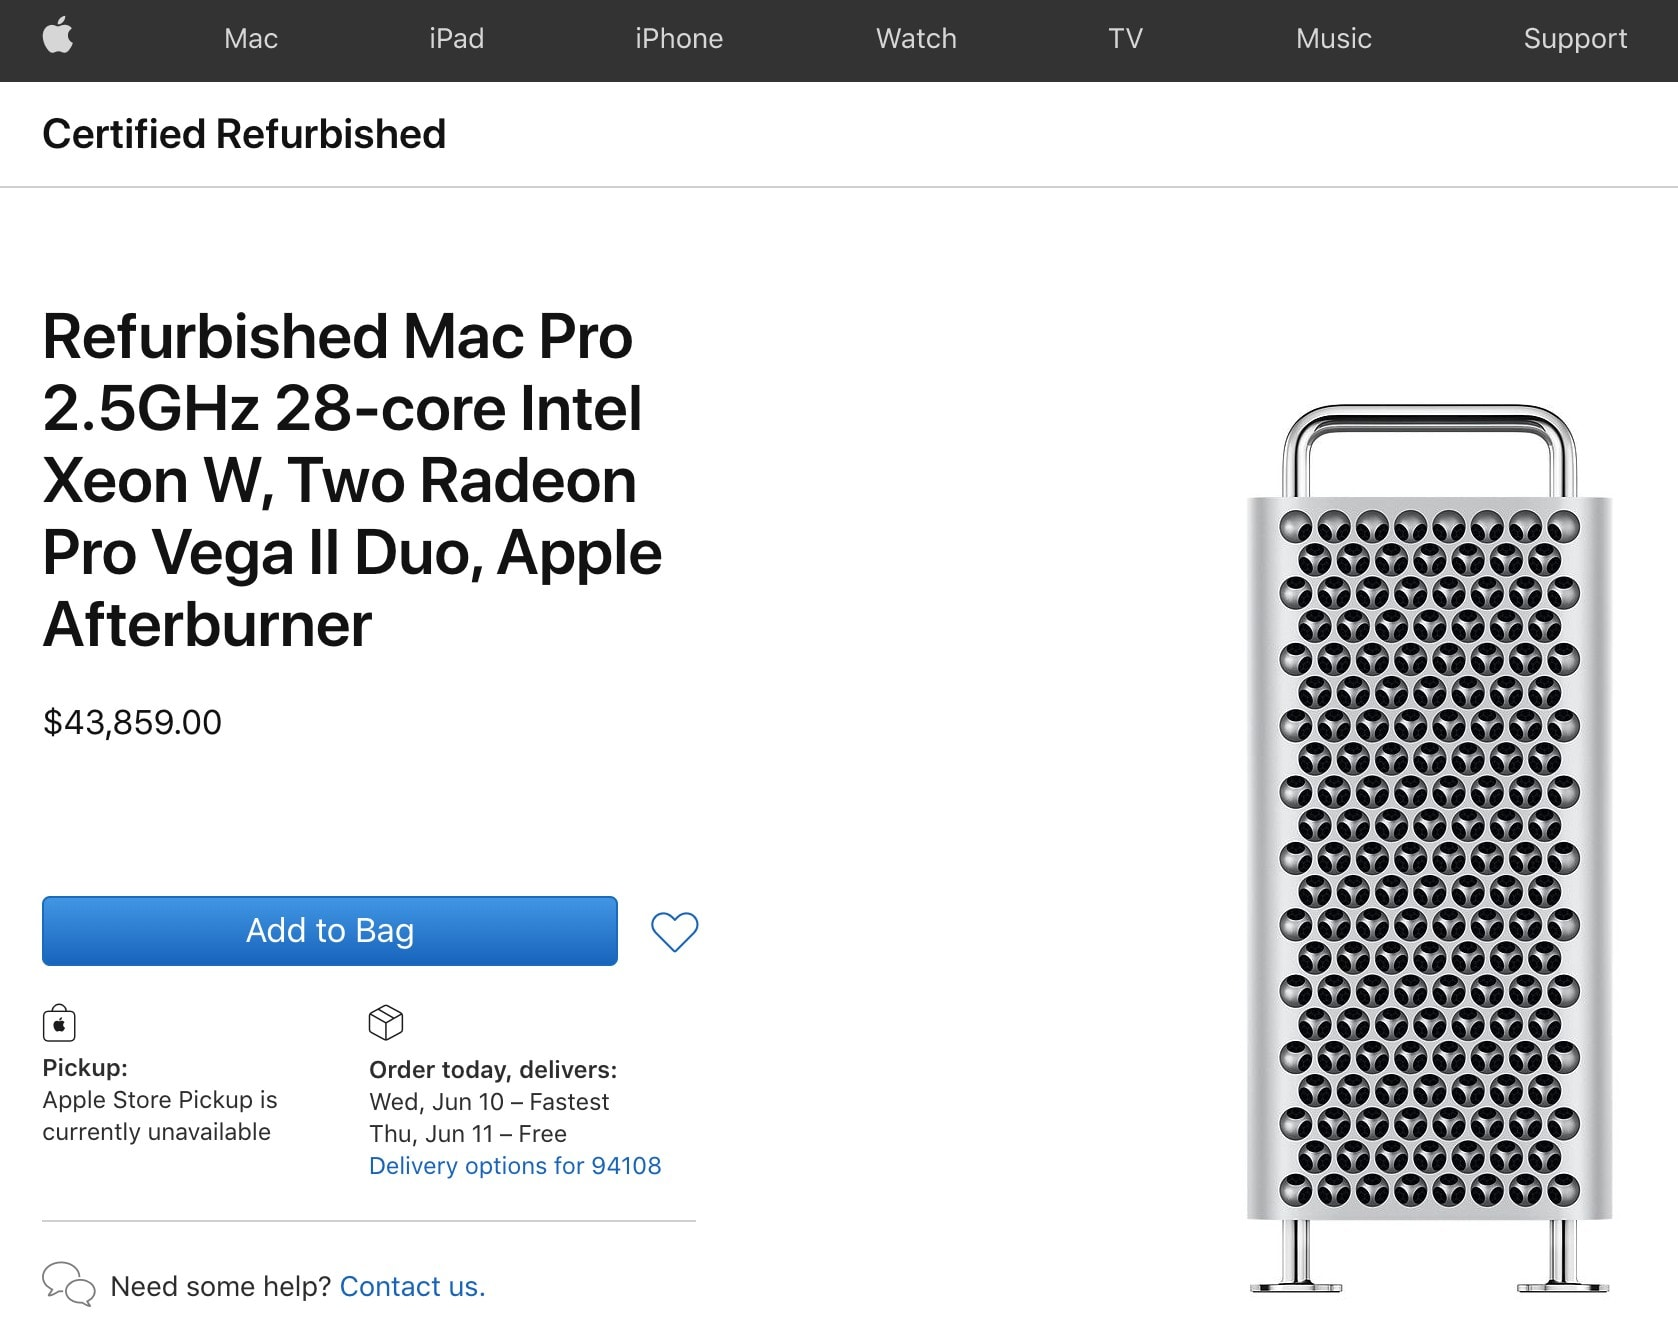 This refurbished Mac Pro costs $43,859.